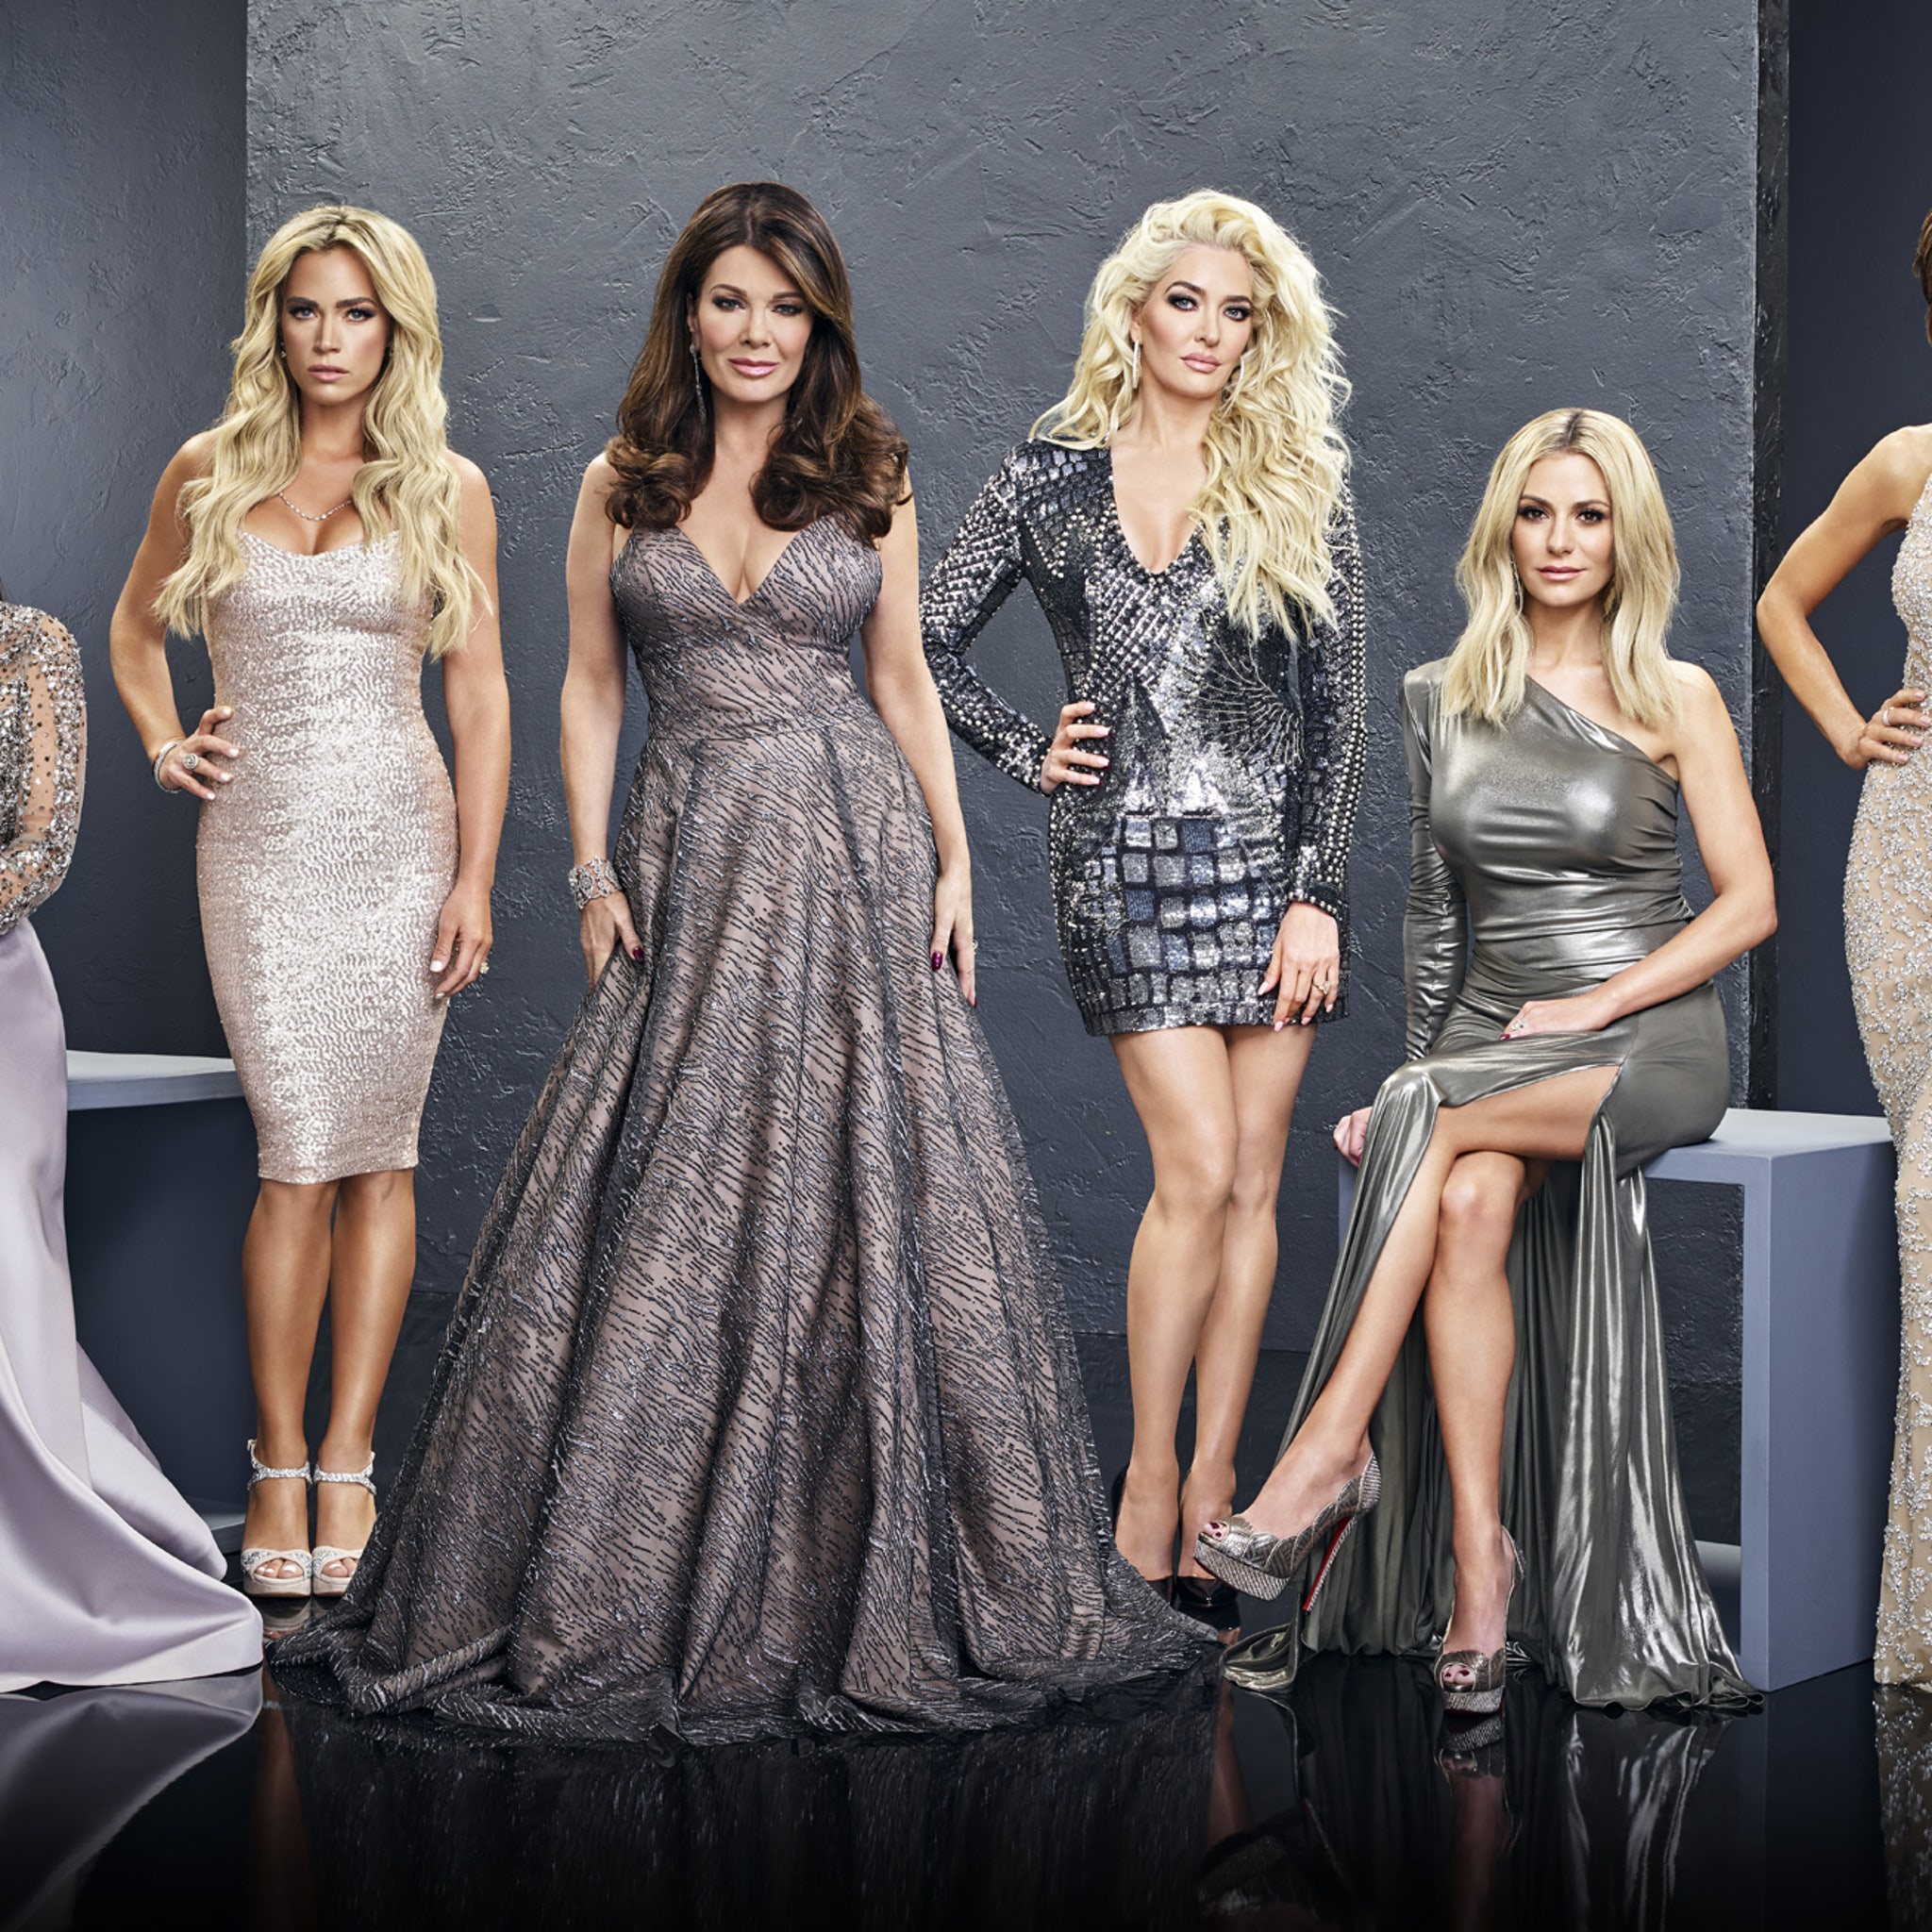 Real Housewives Of Beverly Hills Season 8 Trailer New Face Stirs Up Drama Camille Grammer Returns